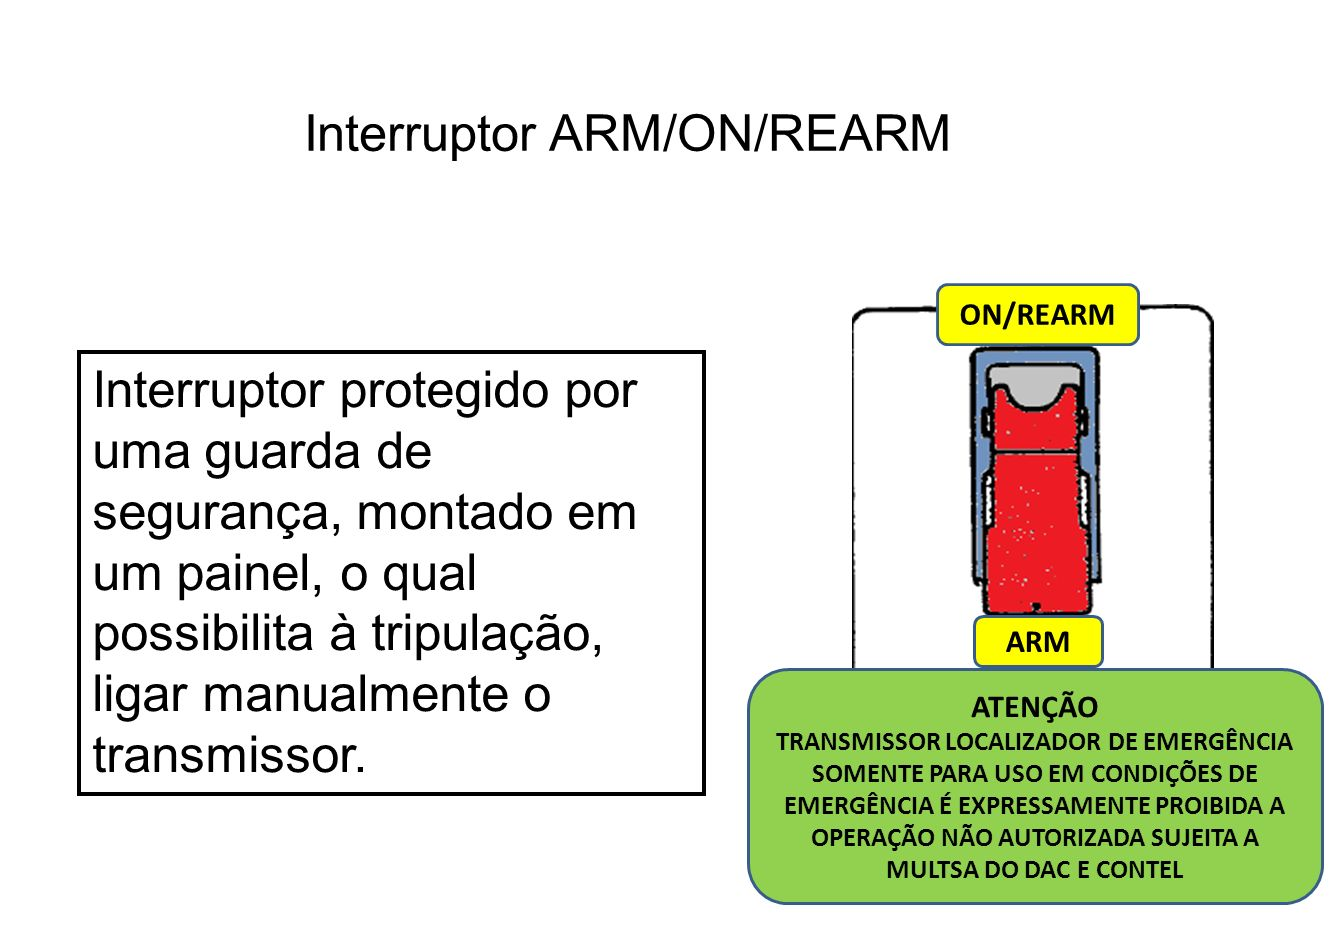 Interruptor ARM/ON/REARM